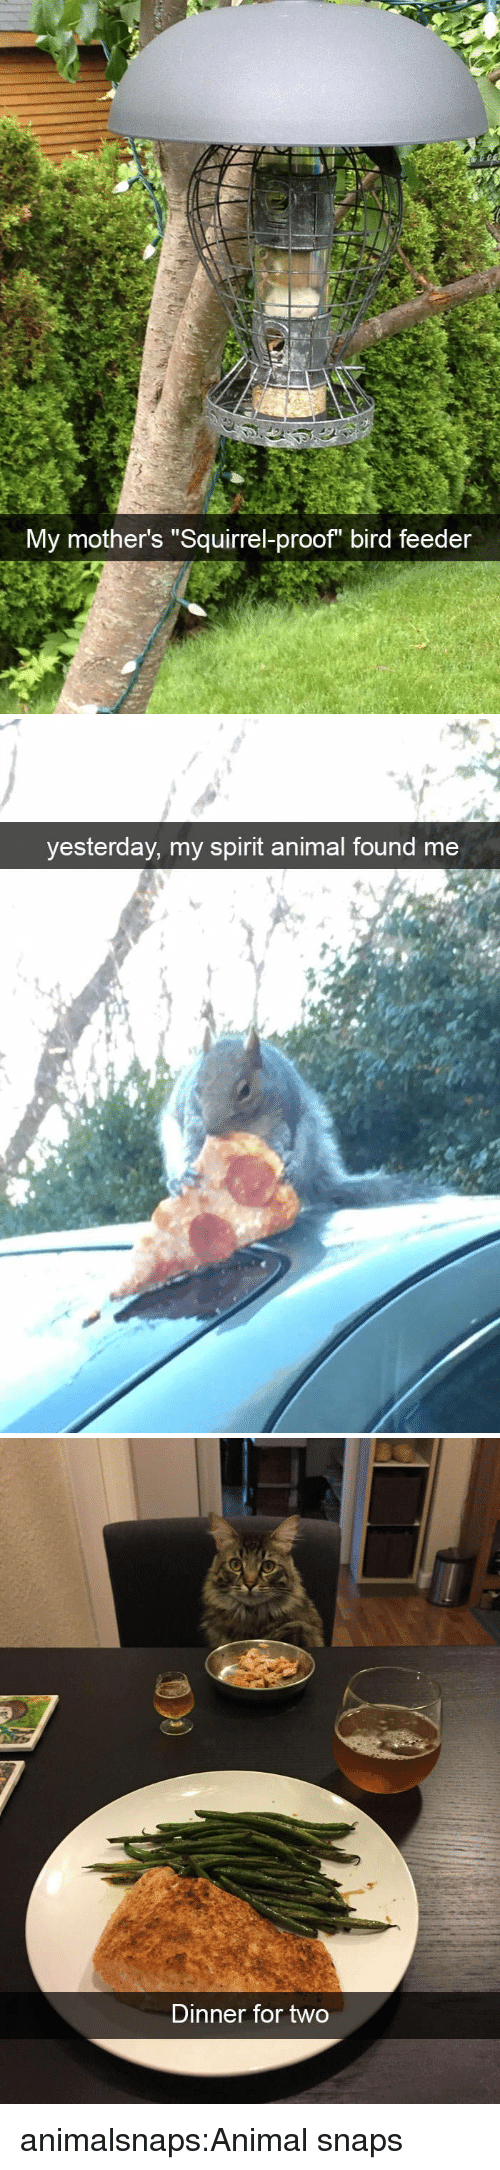 "Target, Tumblr, and Animal: My mother's ""Squirrel-proof bird feeder   yesterday, my spirit animal found me   Dinner for two animalsnaps:Animal snaps"